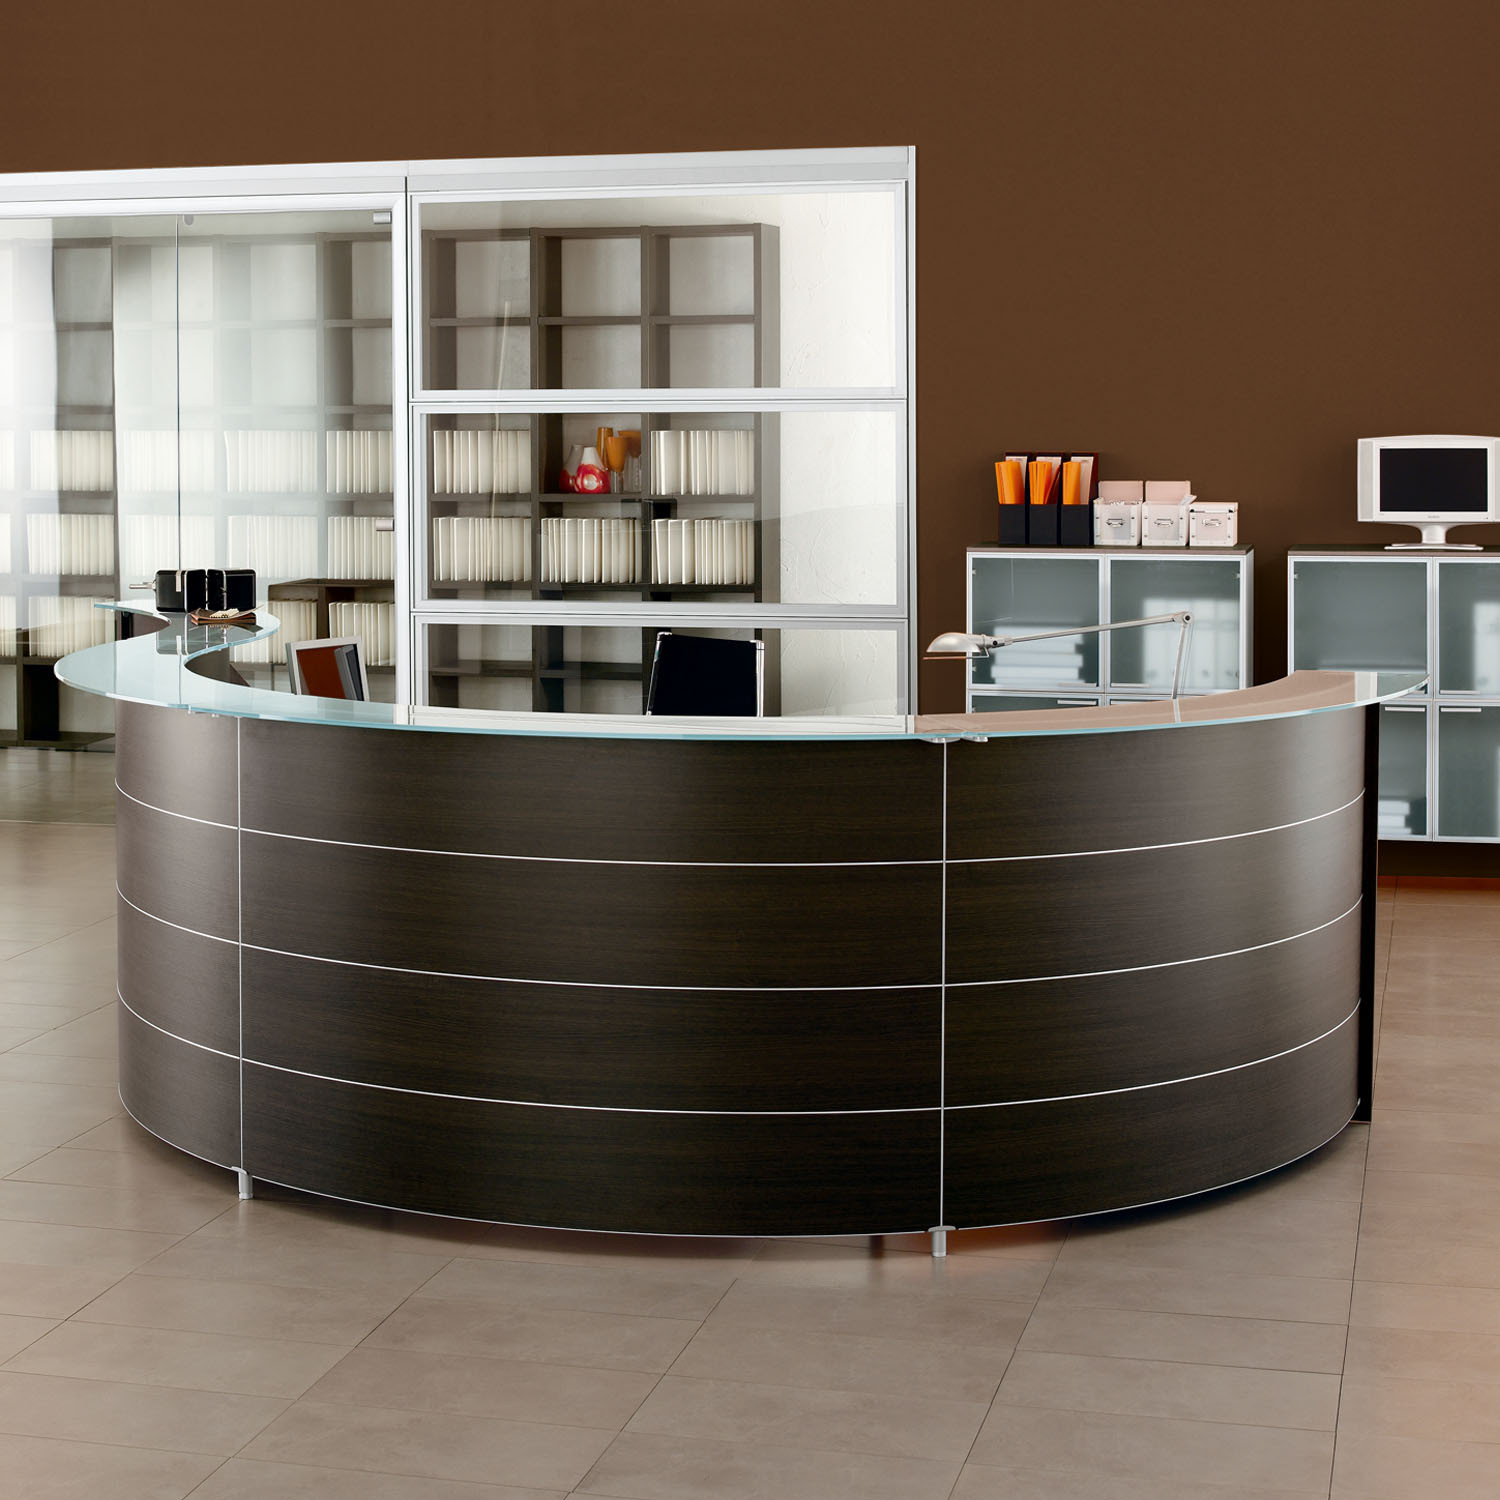 Luna Modular Reception Desks from Sinetica